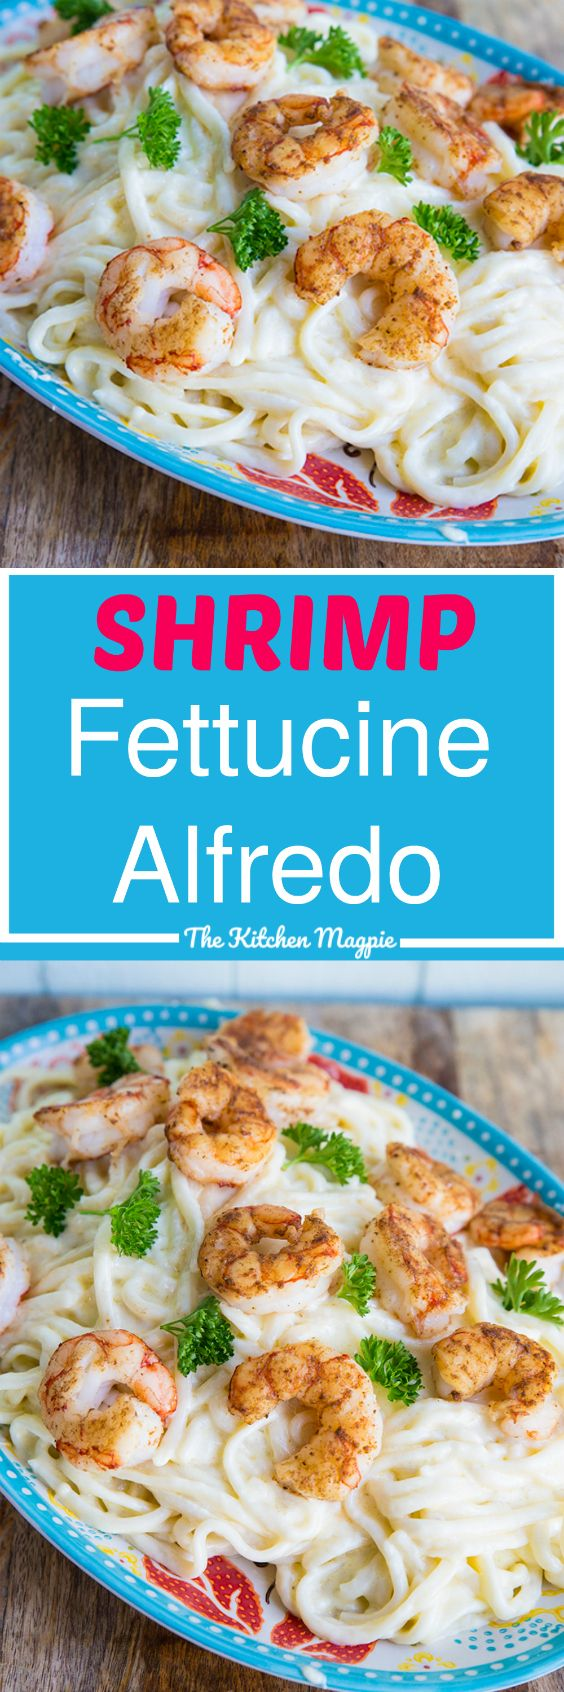 How to make homemade Shrimp Fettucine Alfredo from @kitchenmagpie